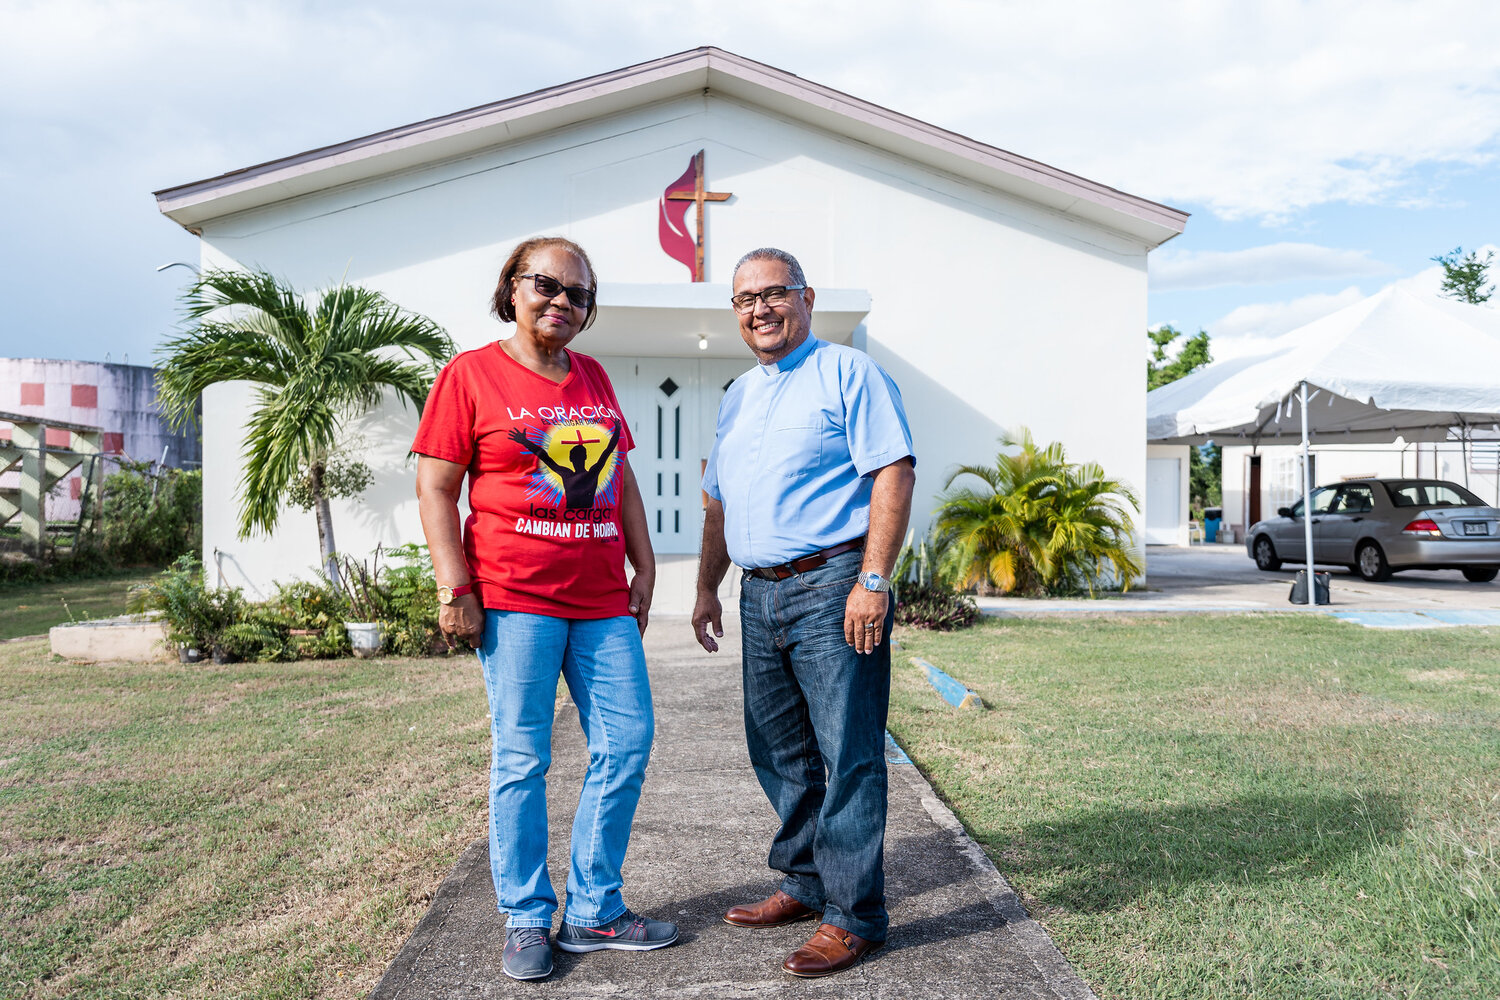 Pastor Hector Florez and Diaconal Minister Gloria Santiago stand in front of the church they serve in Puerto Rico, Iglesia Metodista Mesón de Amor, which became a community lifeline after Hurricane Maria. Photo courtesy of the United Methodist Development Fund.